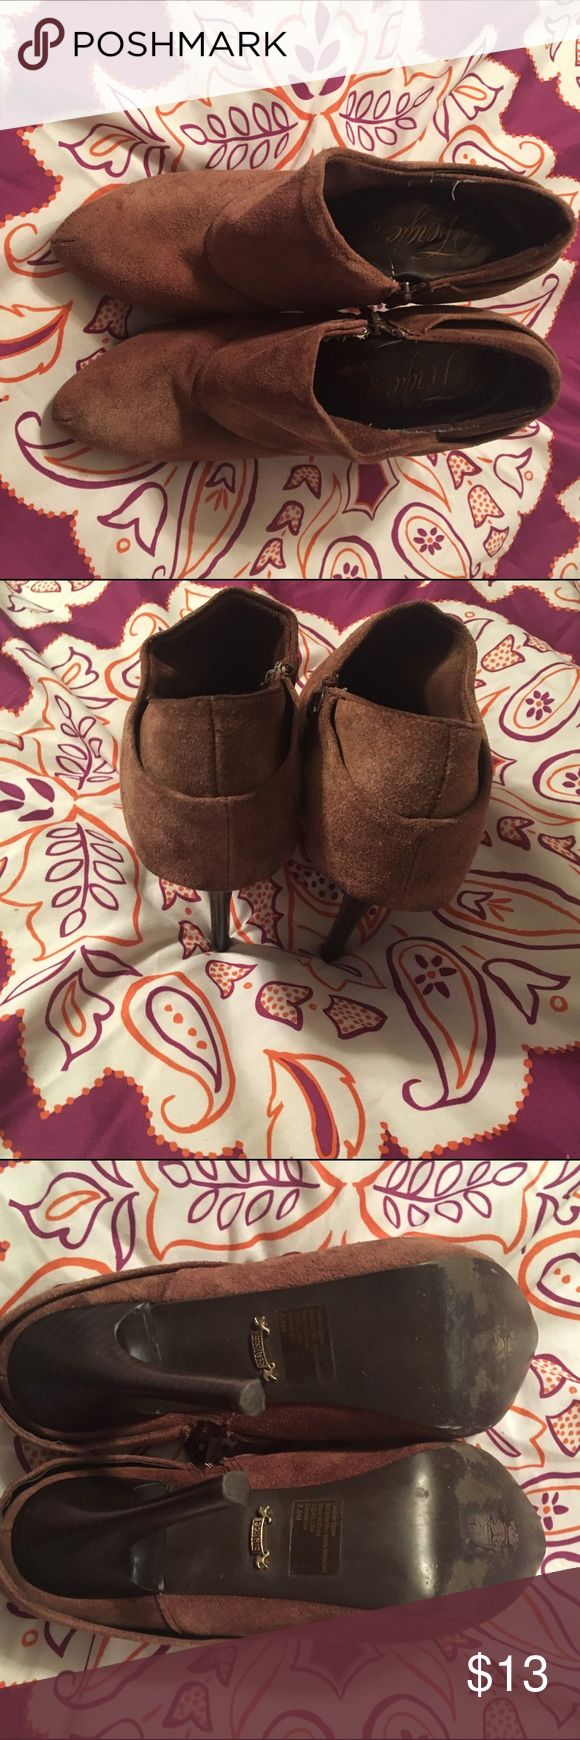 Fergie leather booties size 7.5 Suede material. Color is faded somewhat but you can't tell when wearing them. Bottoms in excellent condition Fergie Shoes Ankle Boots & Booties